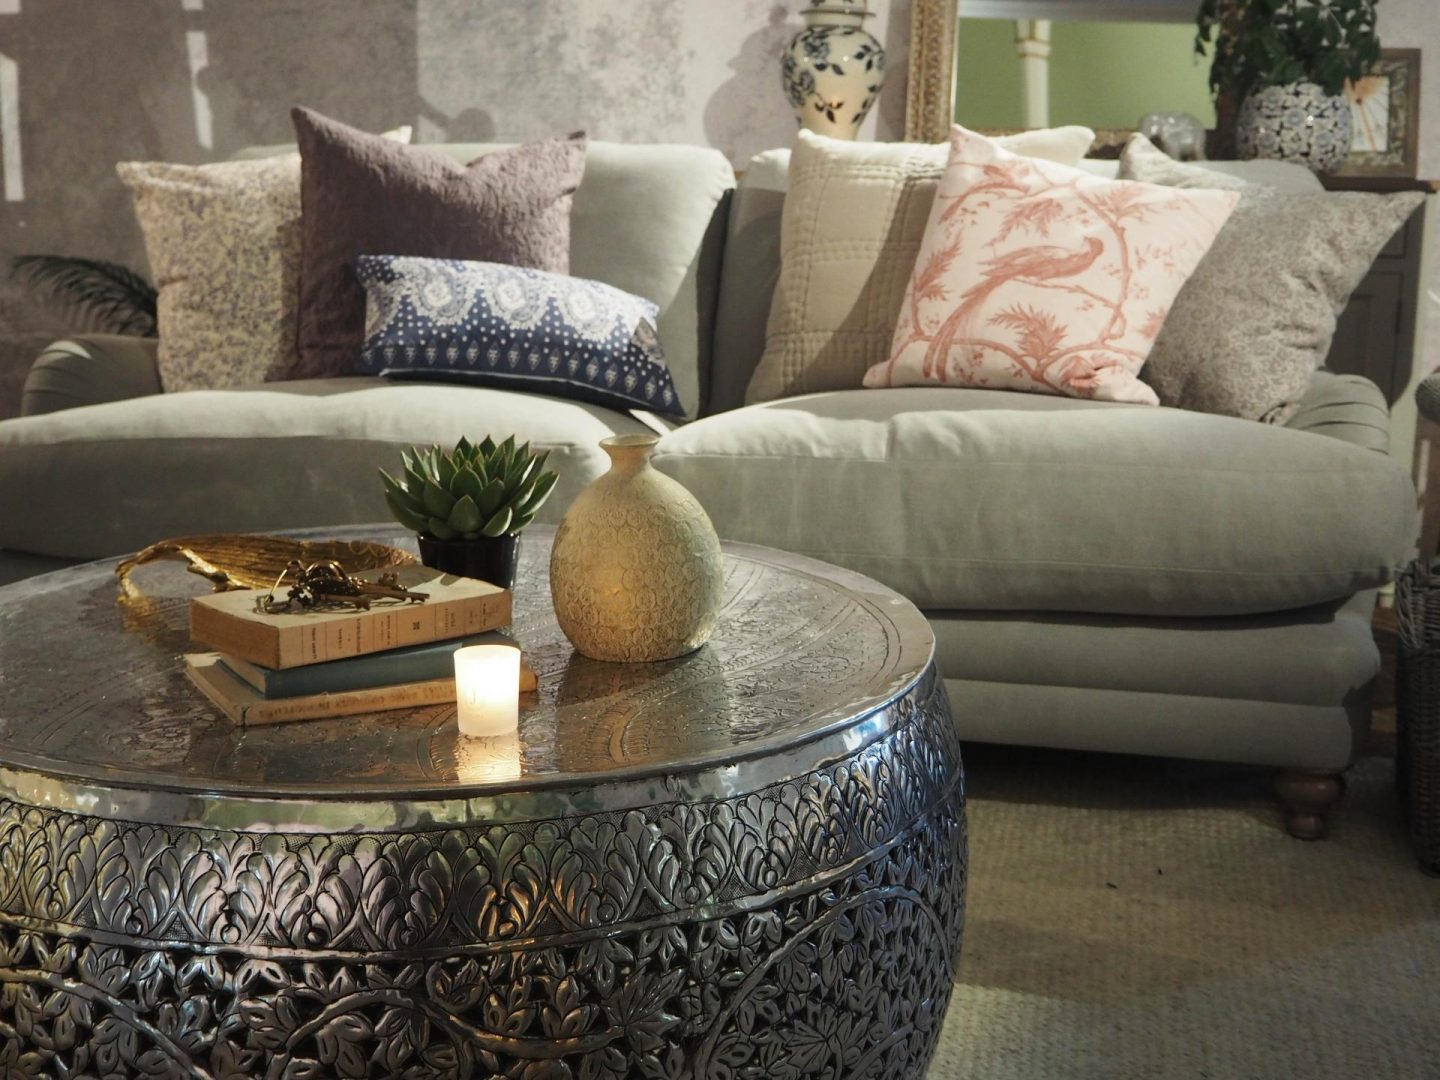 Guest Post: Six Interesting Ways to Decorate Your Home